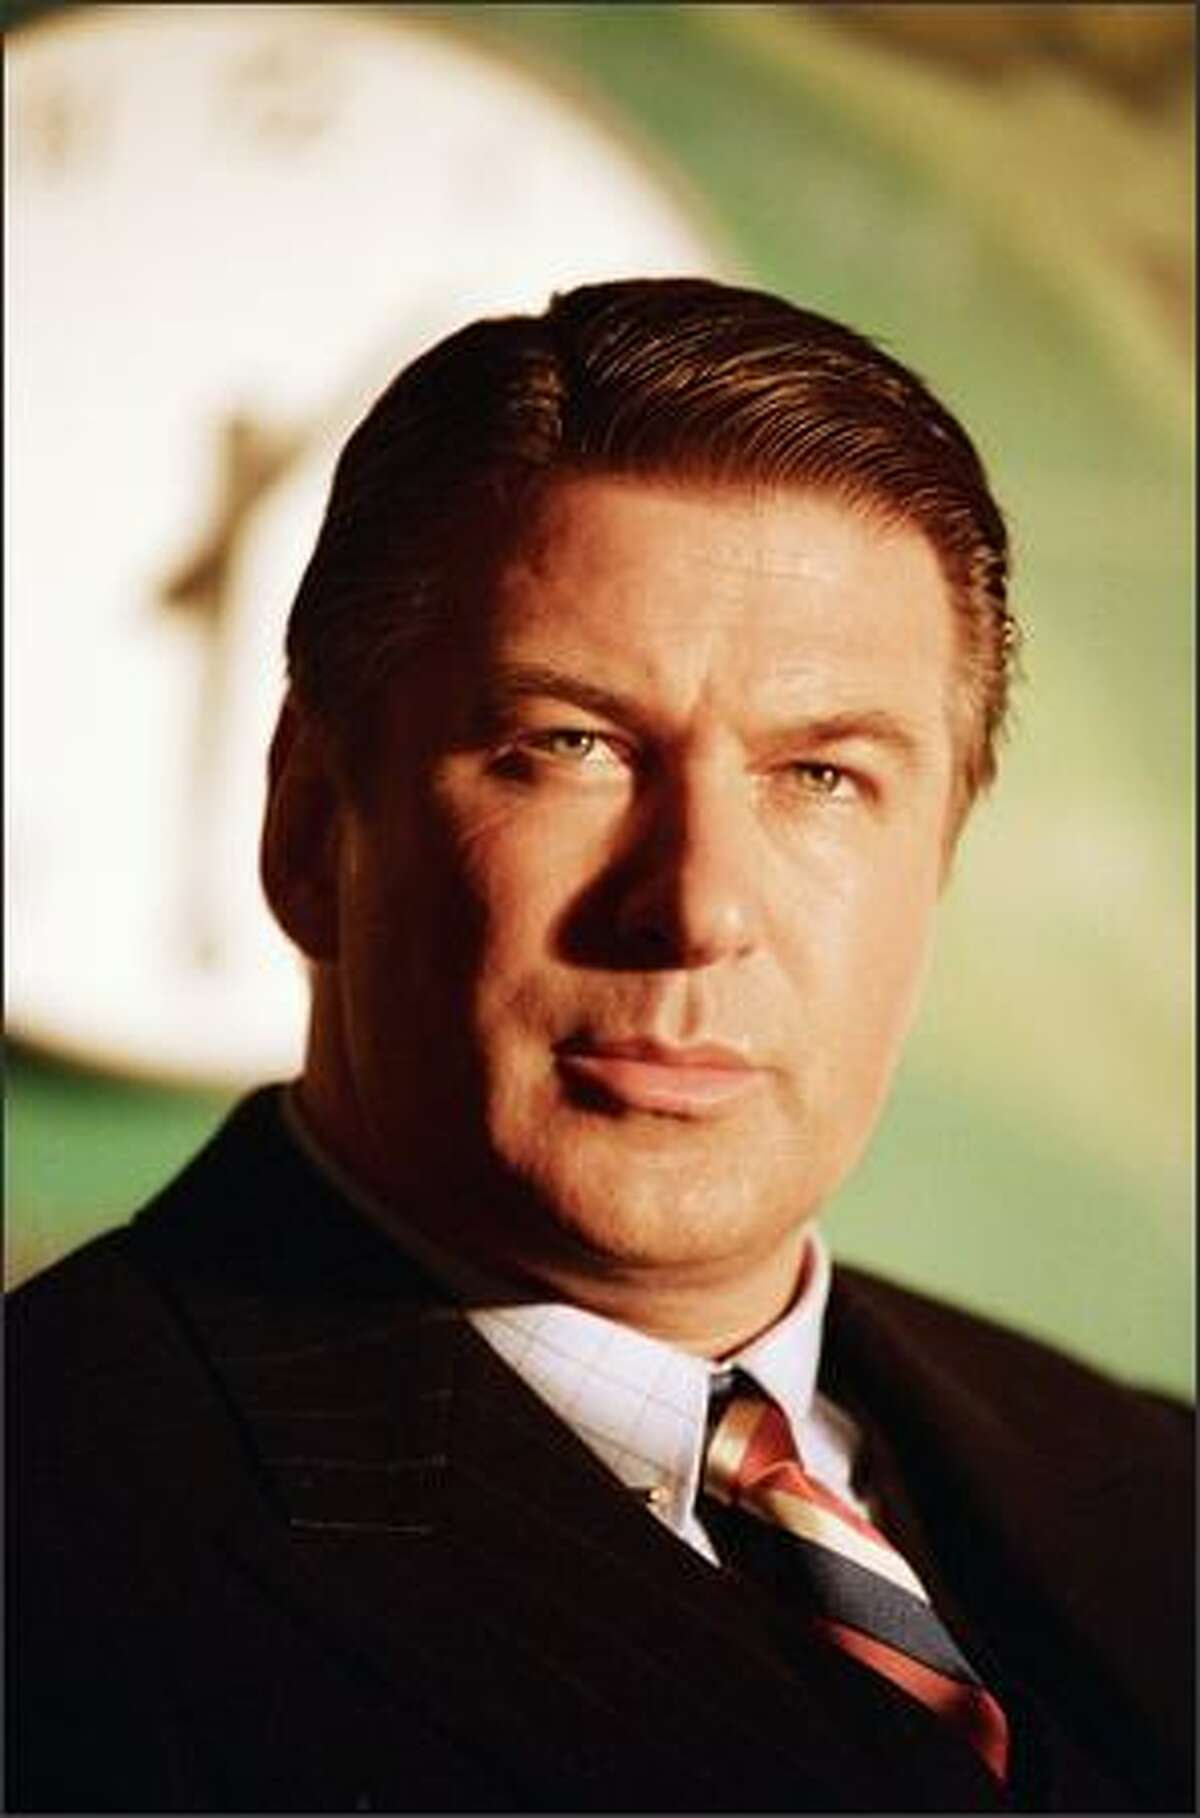 Alec Baldwin stars as Pan Am Head Juane Trippe in